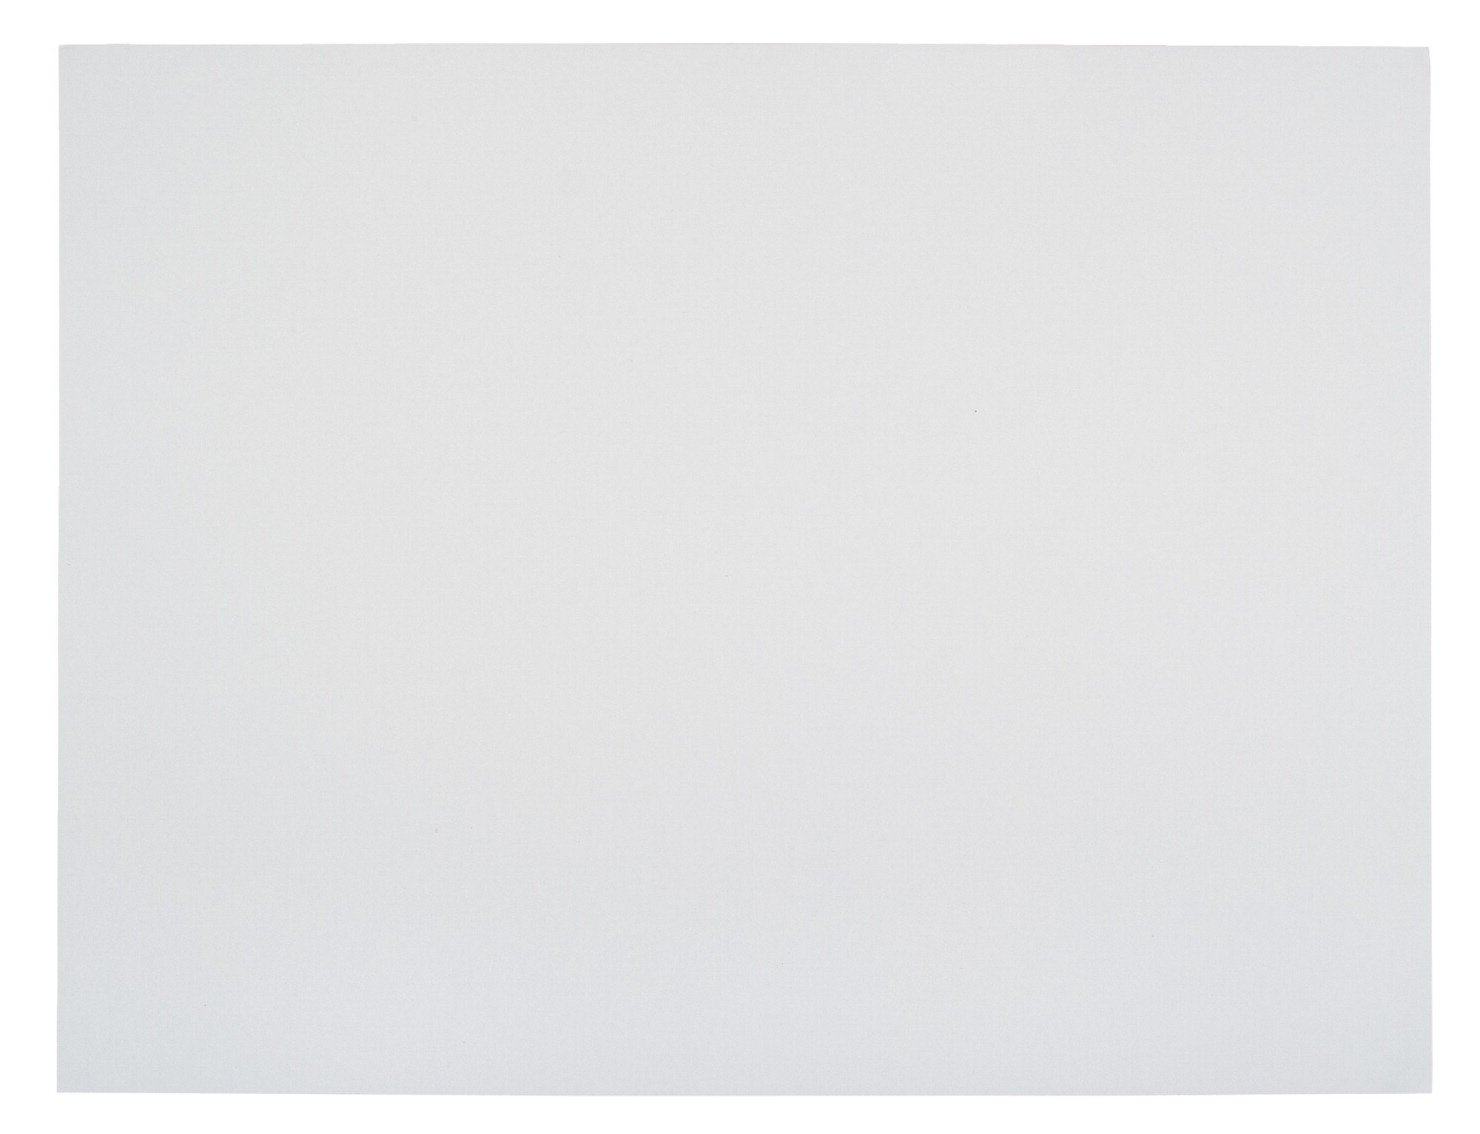 Poster Board - 25 Pack